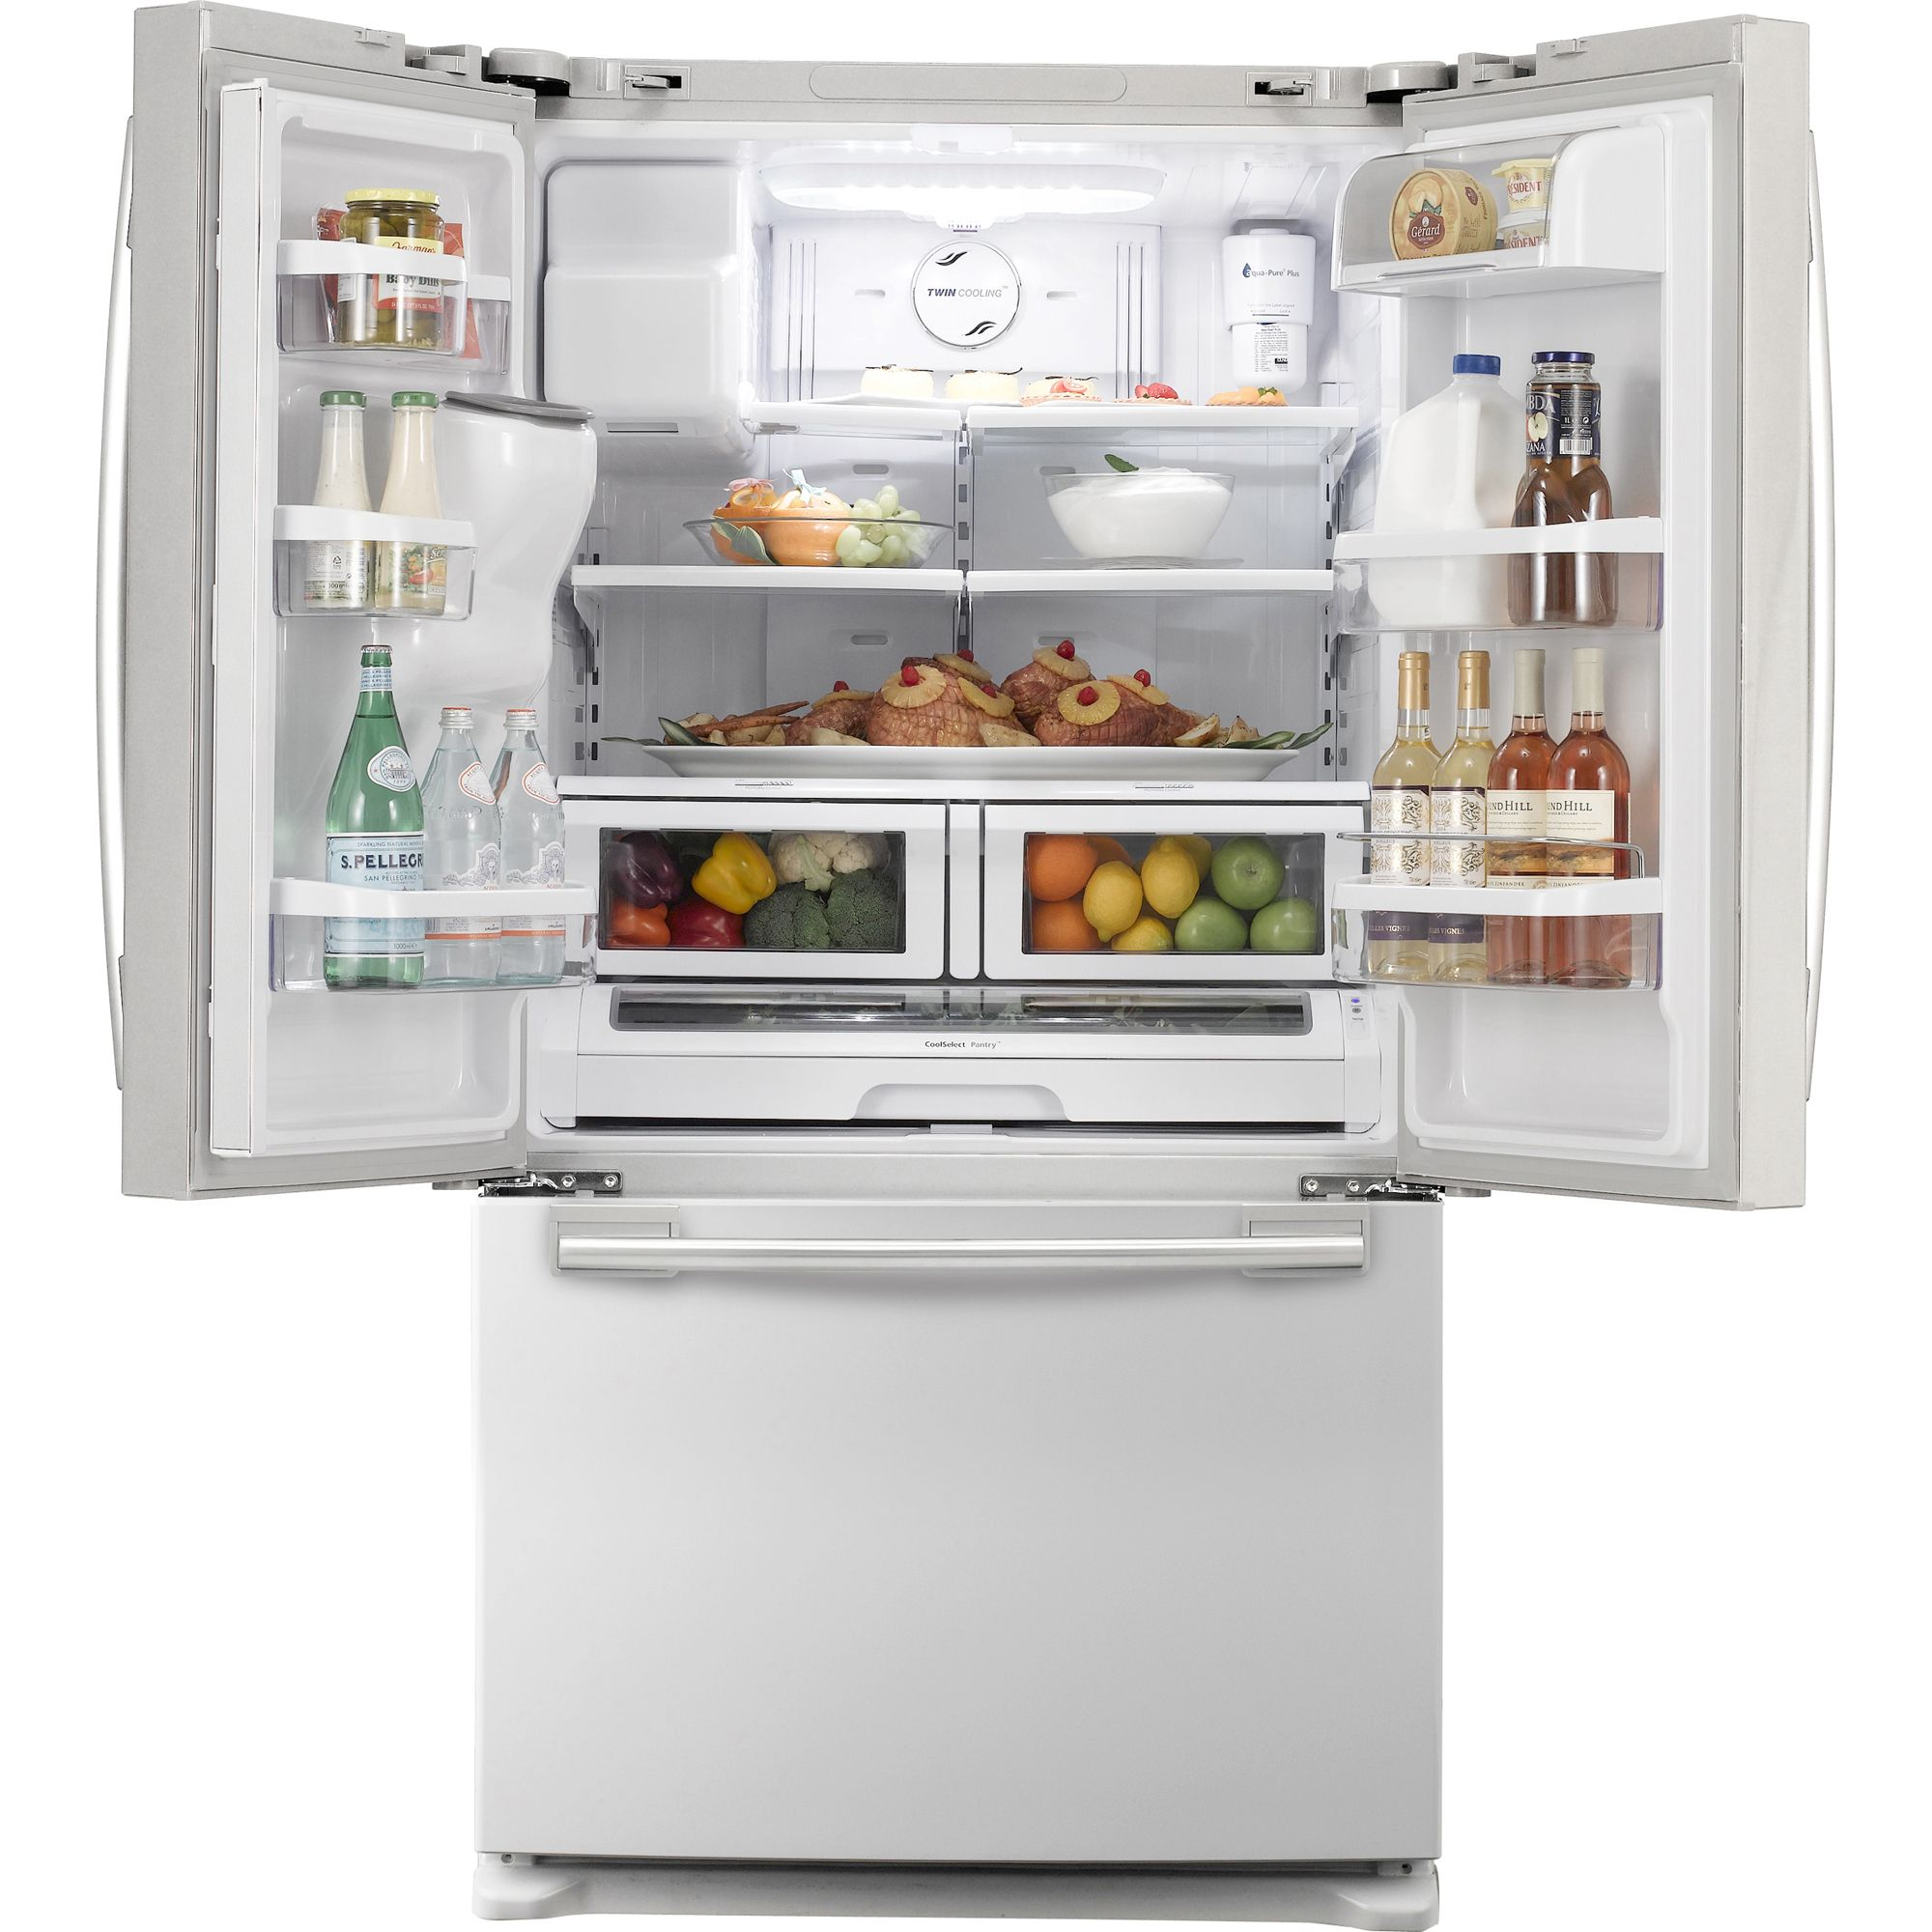 Samsung 26.0 cu. ft. French-Door Bottom Freezer Refrigerator,